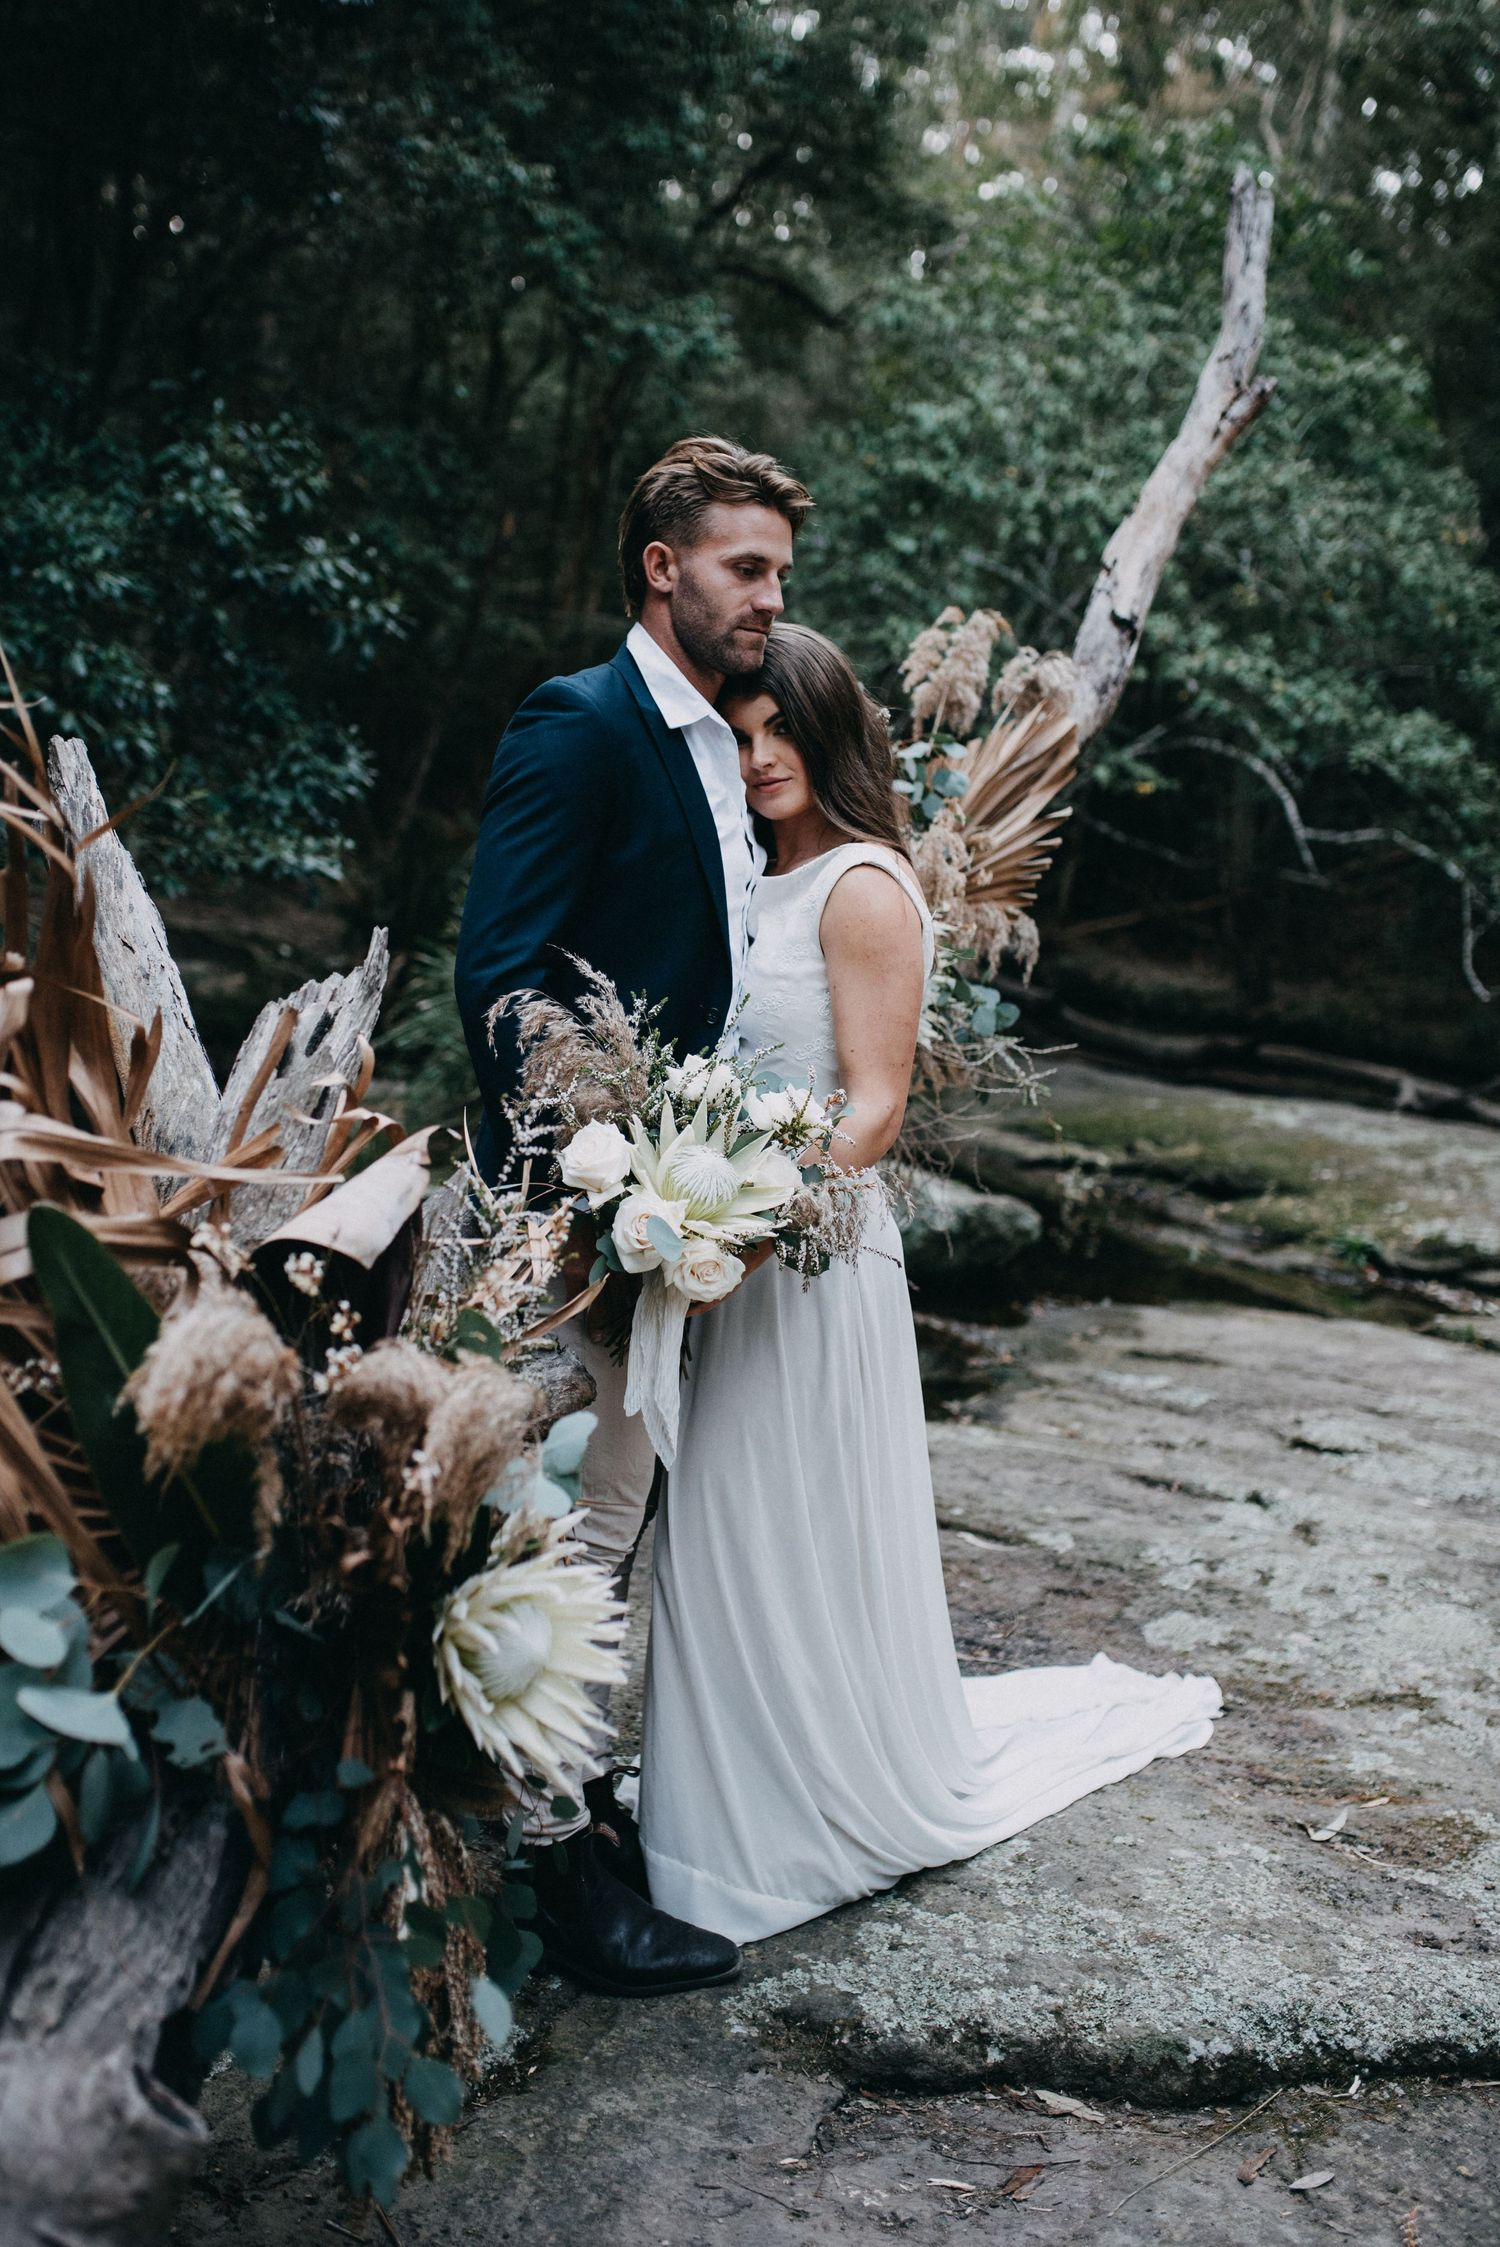 wedding photography of couple with flowers glenrock forest newcastle nsw